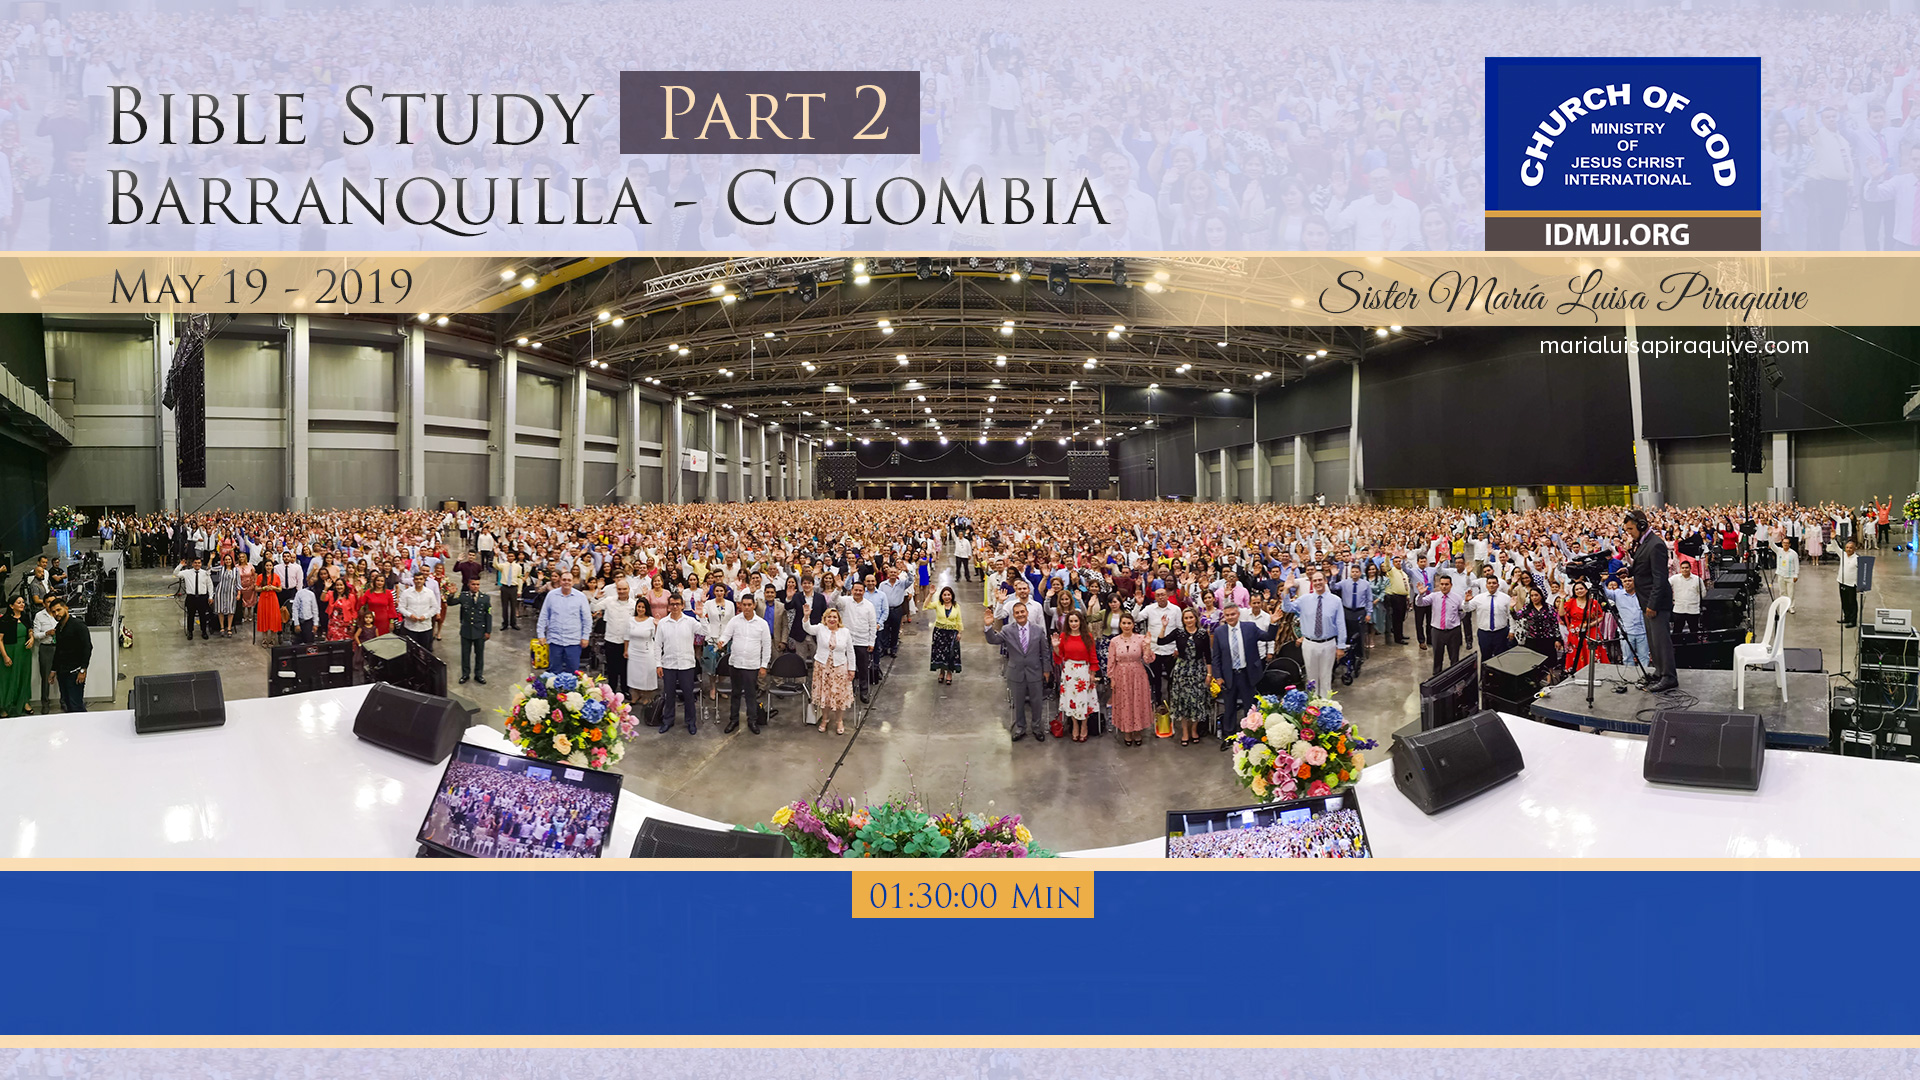 Bible Study in Barranquilla, Colombia – Part 2